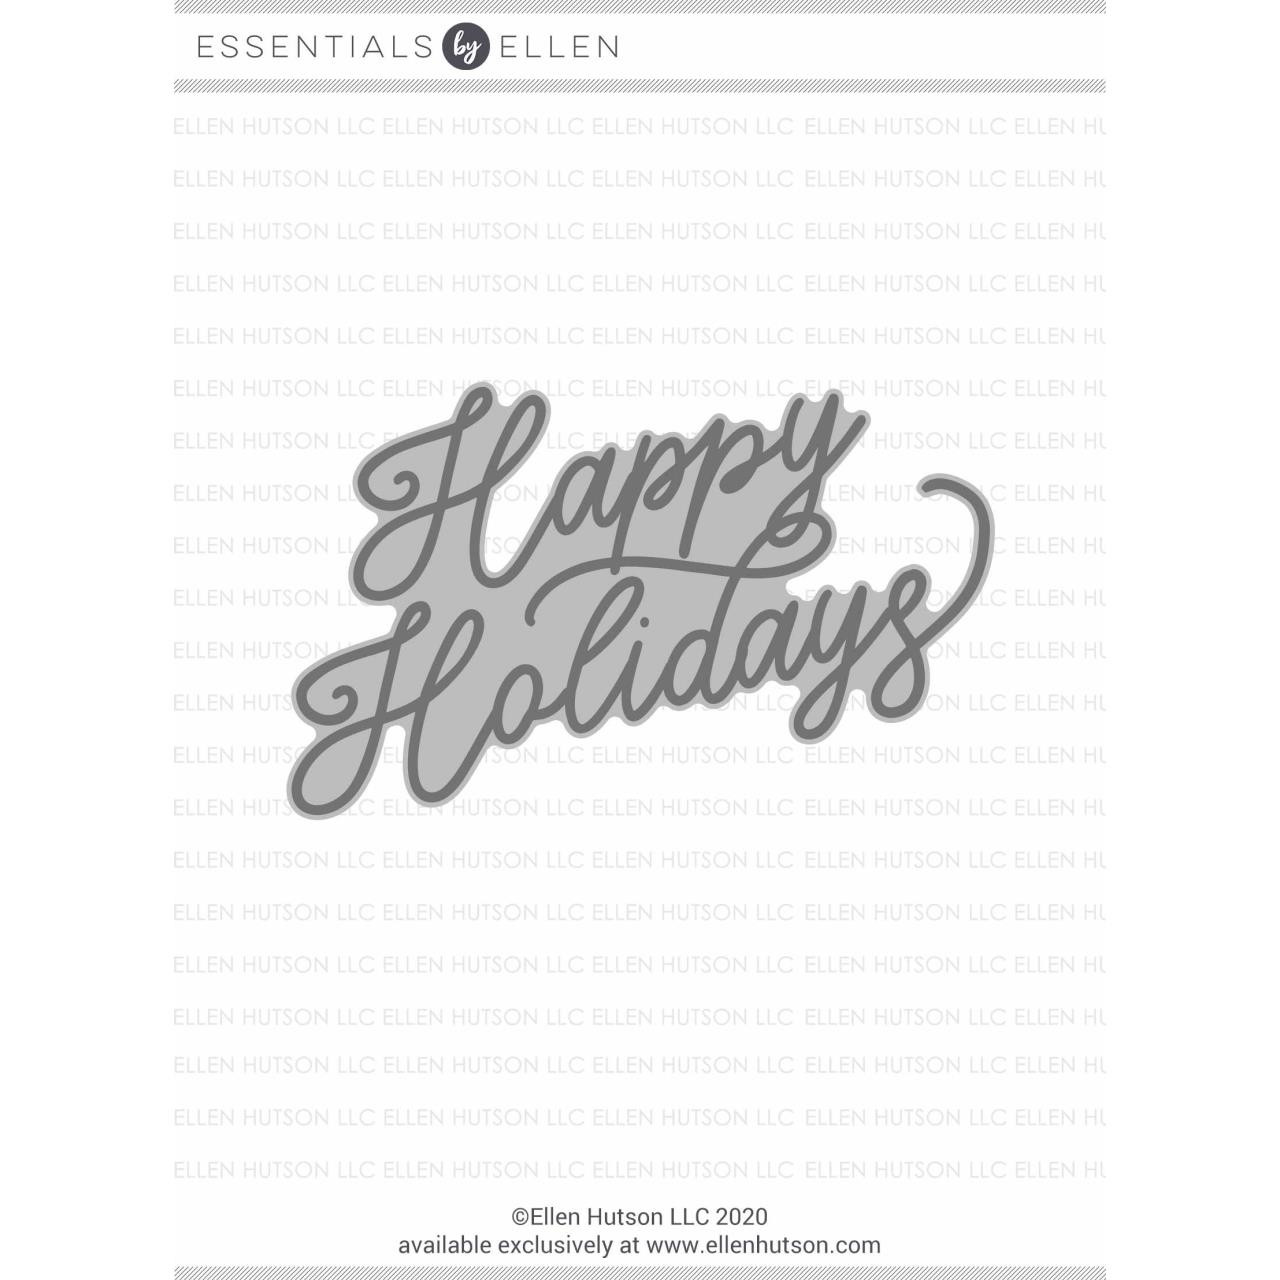 Happy Holidays by Julie Ebersole, Essentials by Ellen Hot Foil Stamps -